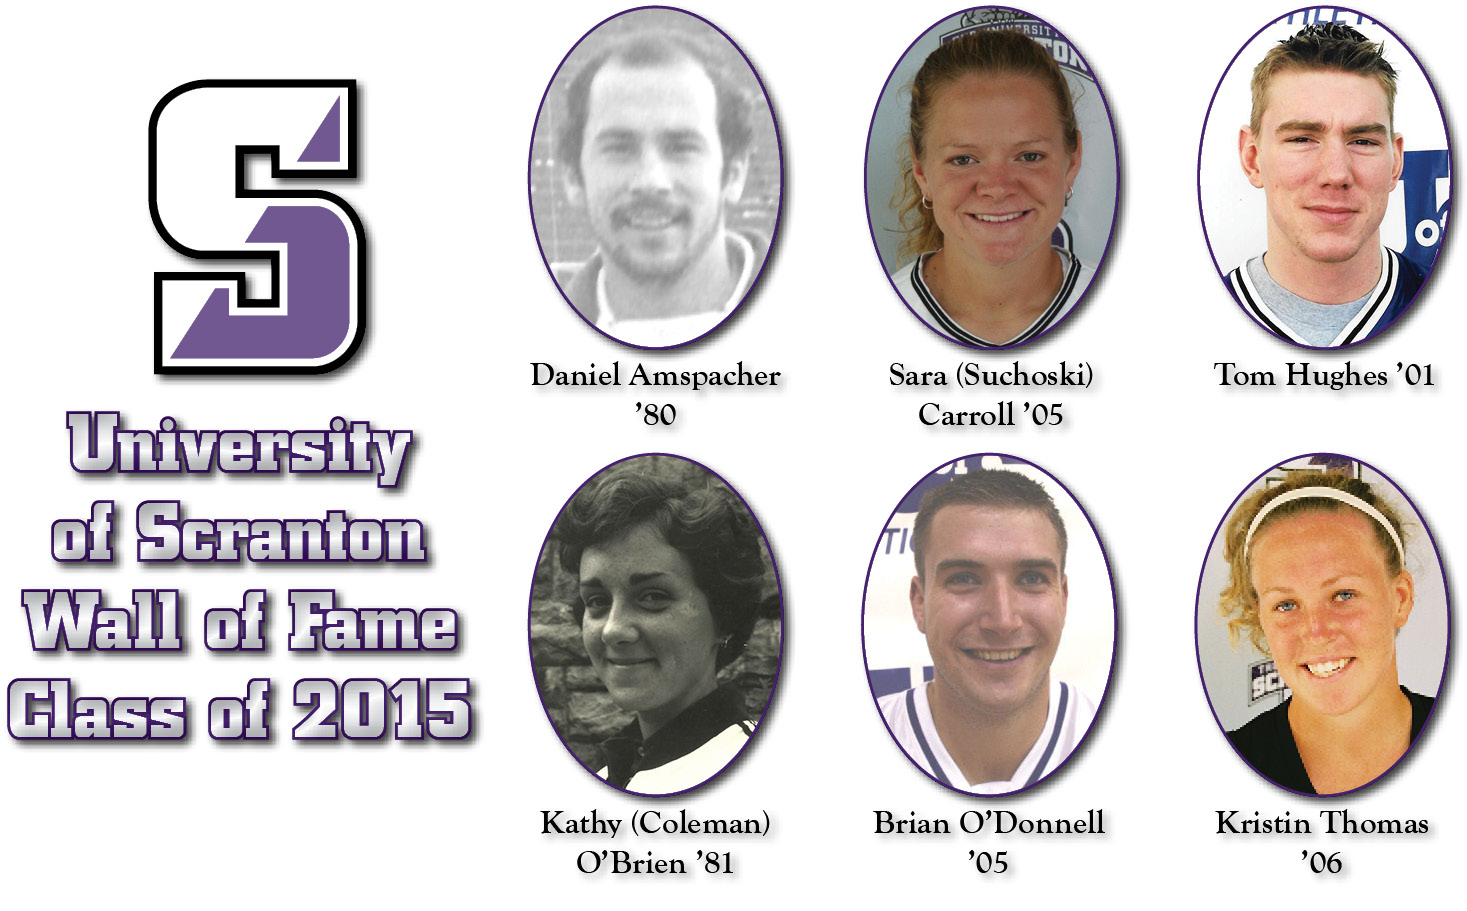 University To Induct Six Newest Wall of Fame Members on Saturday